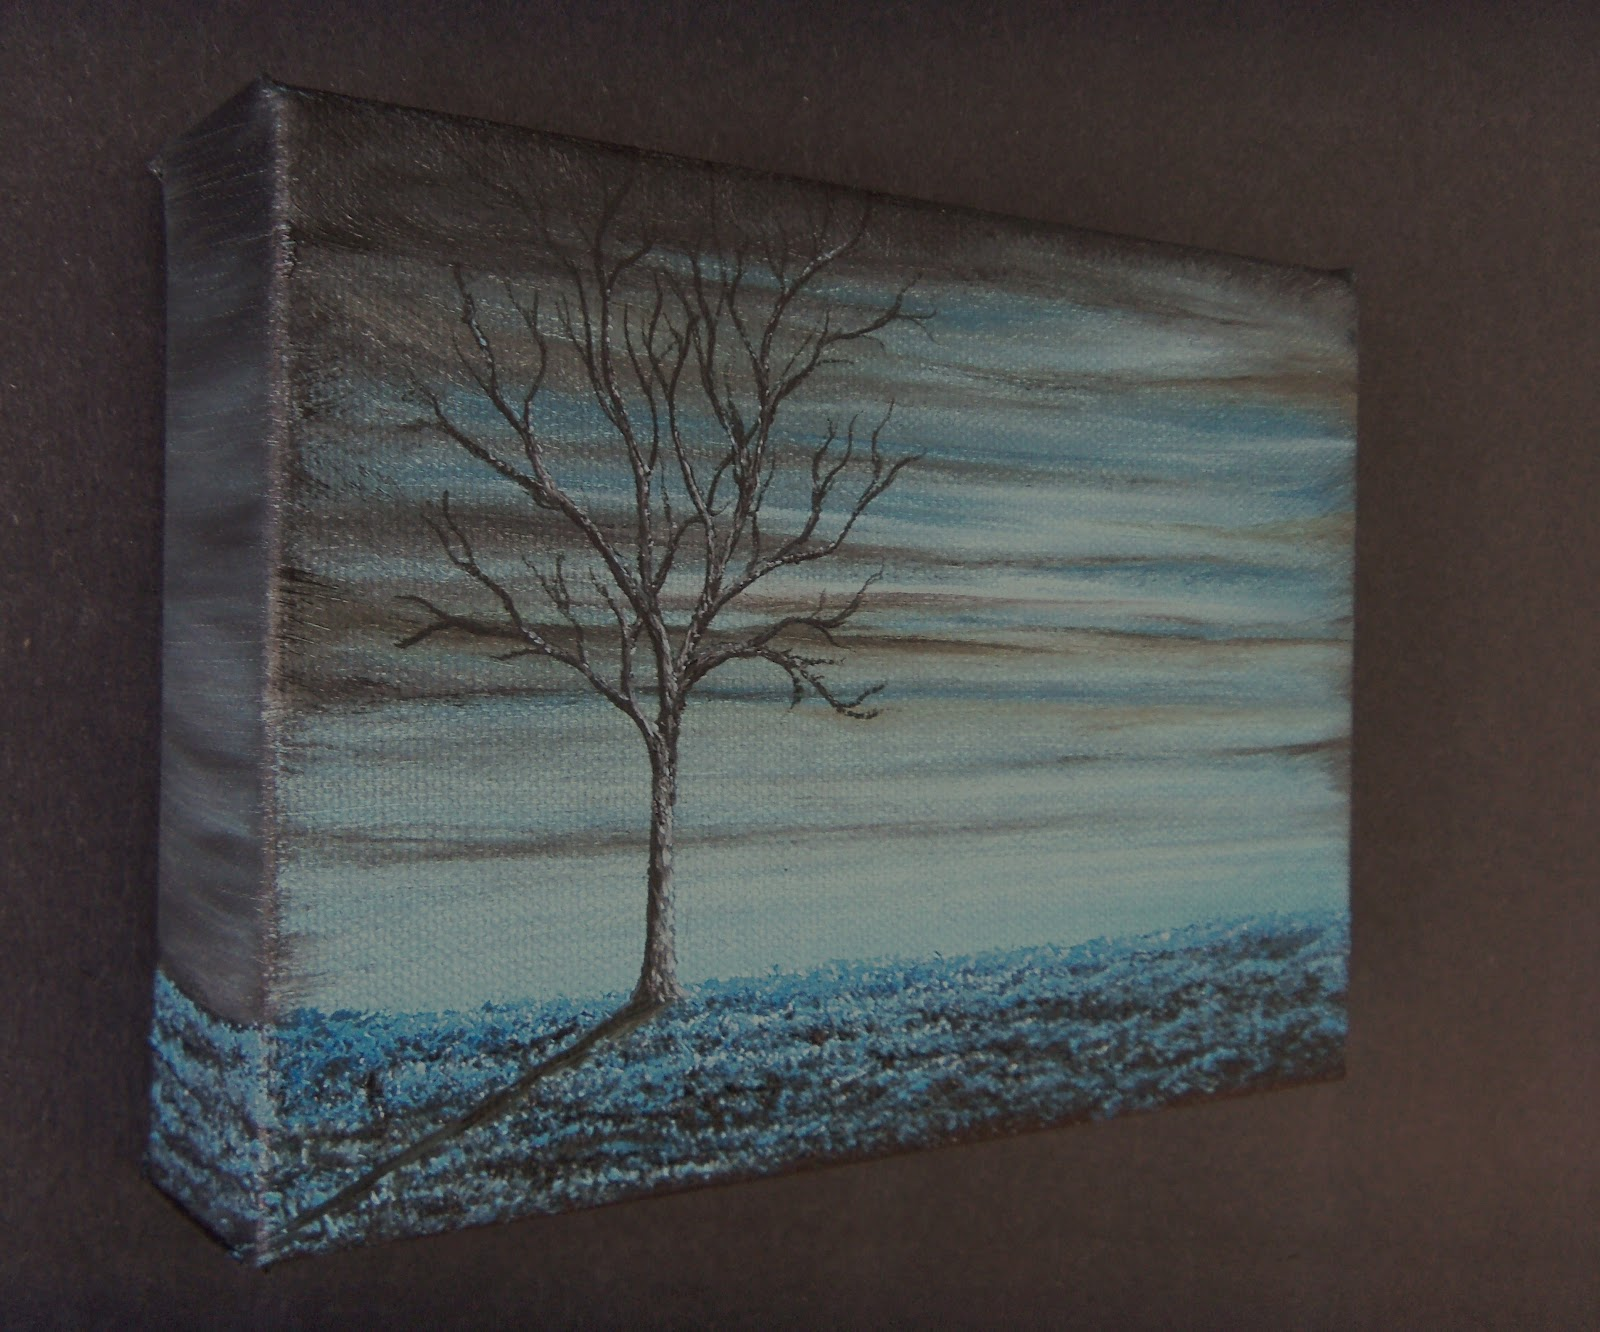 Abstract Tree Oil Painting Contemporary Art on Textured Canvas 5 x